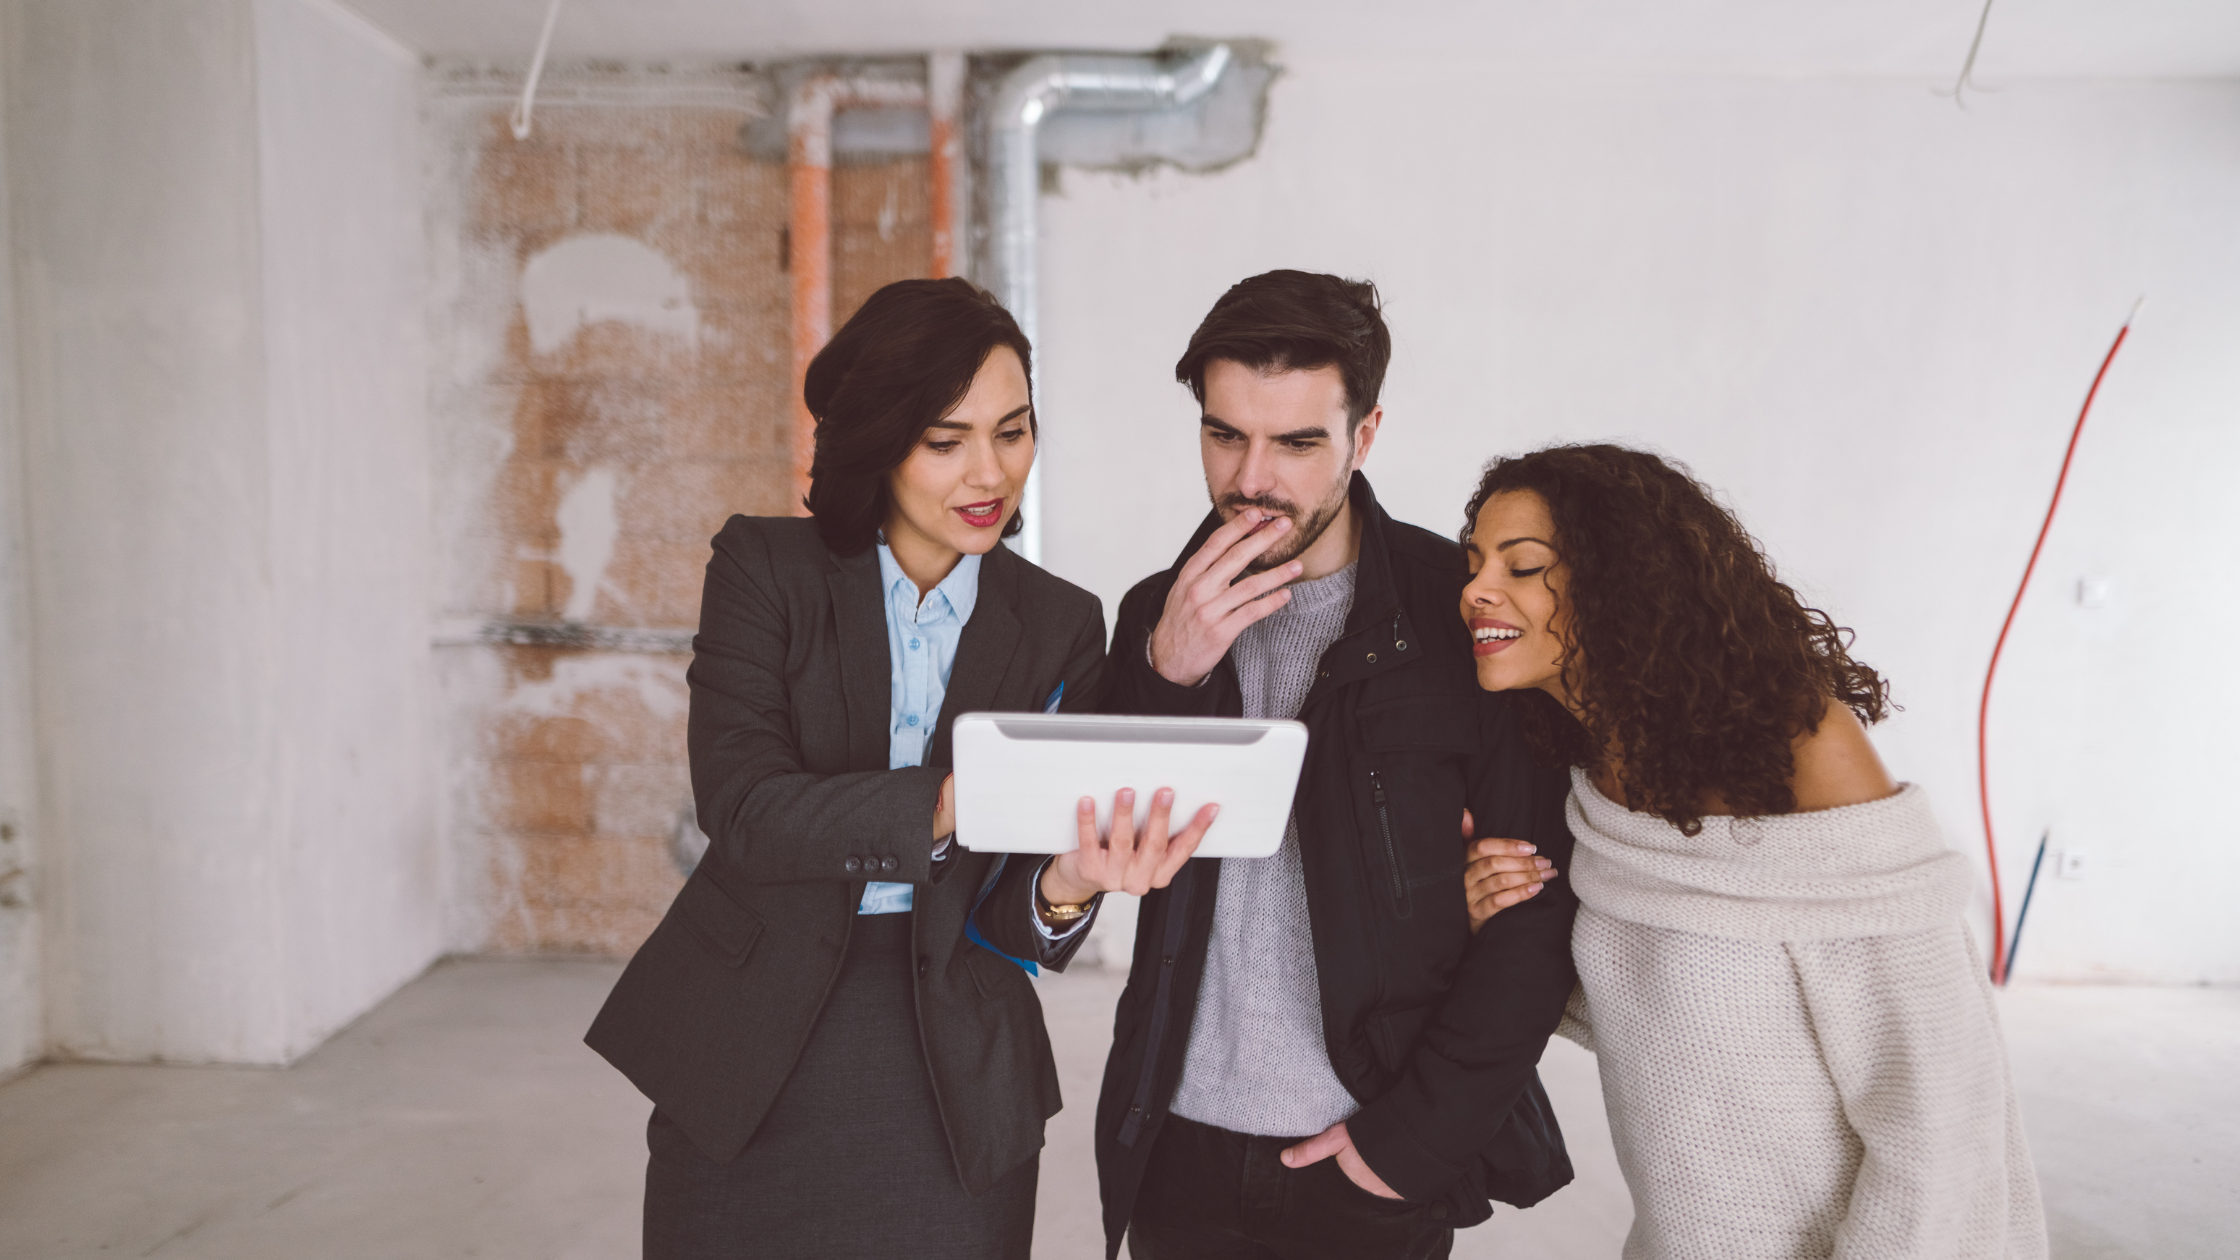 three people gathered around a tablet discussing strategy